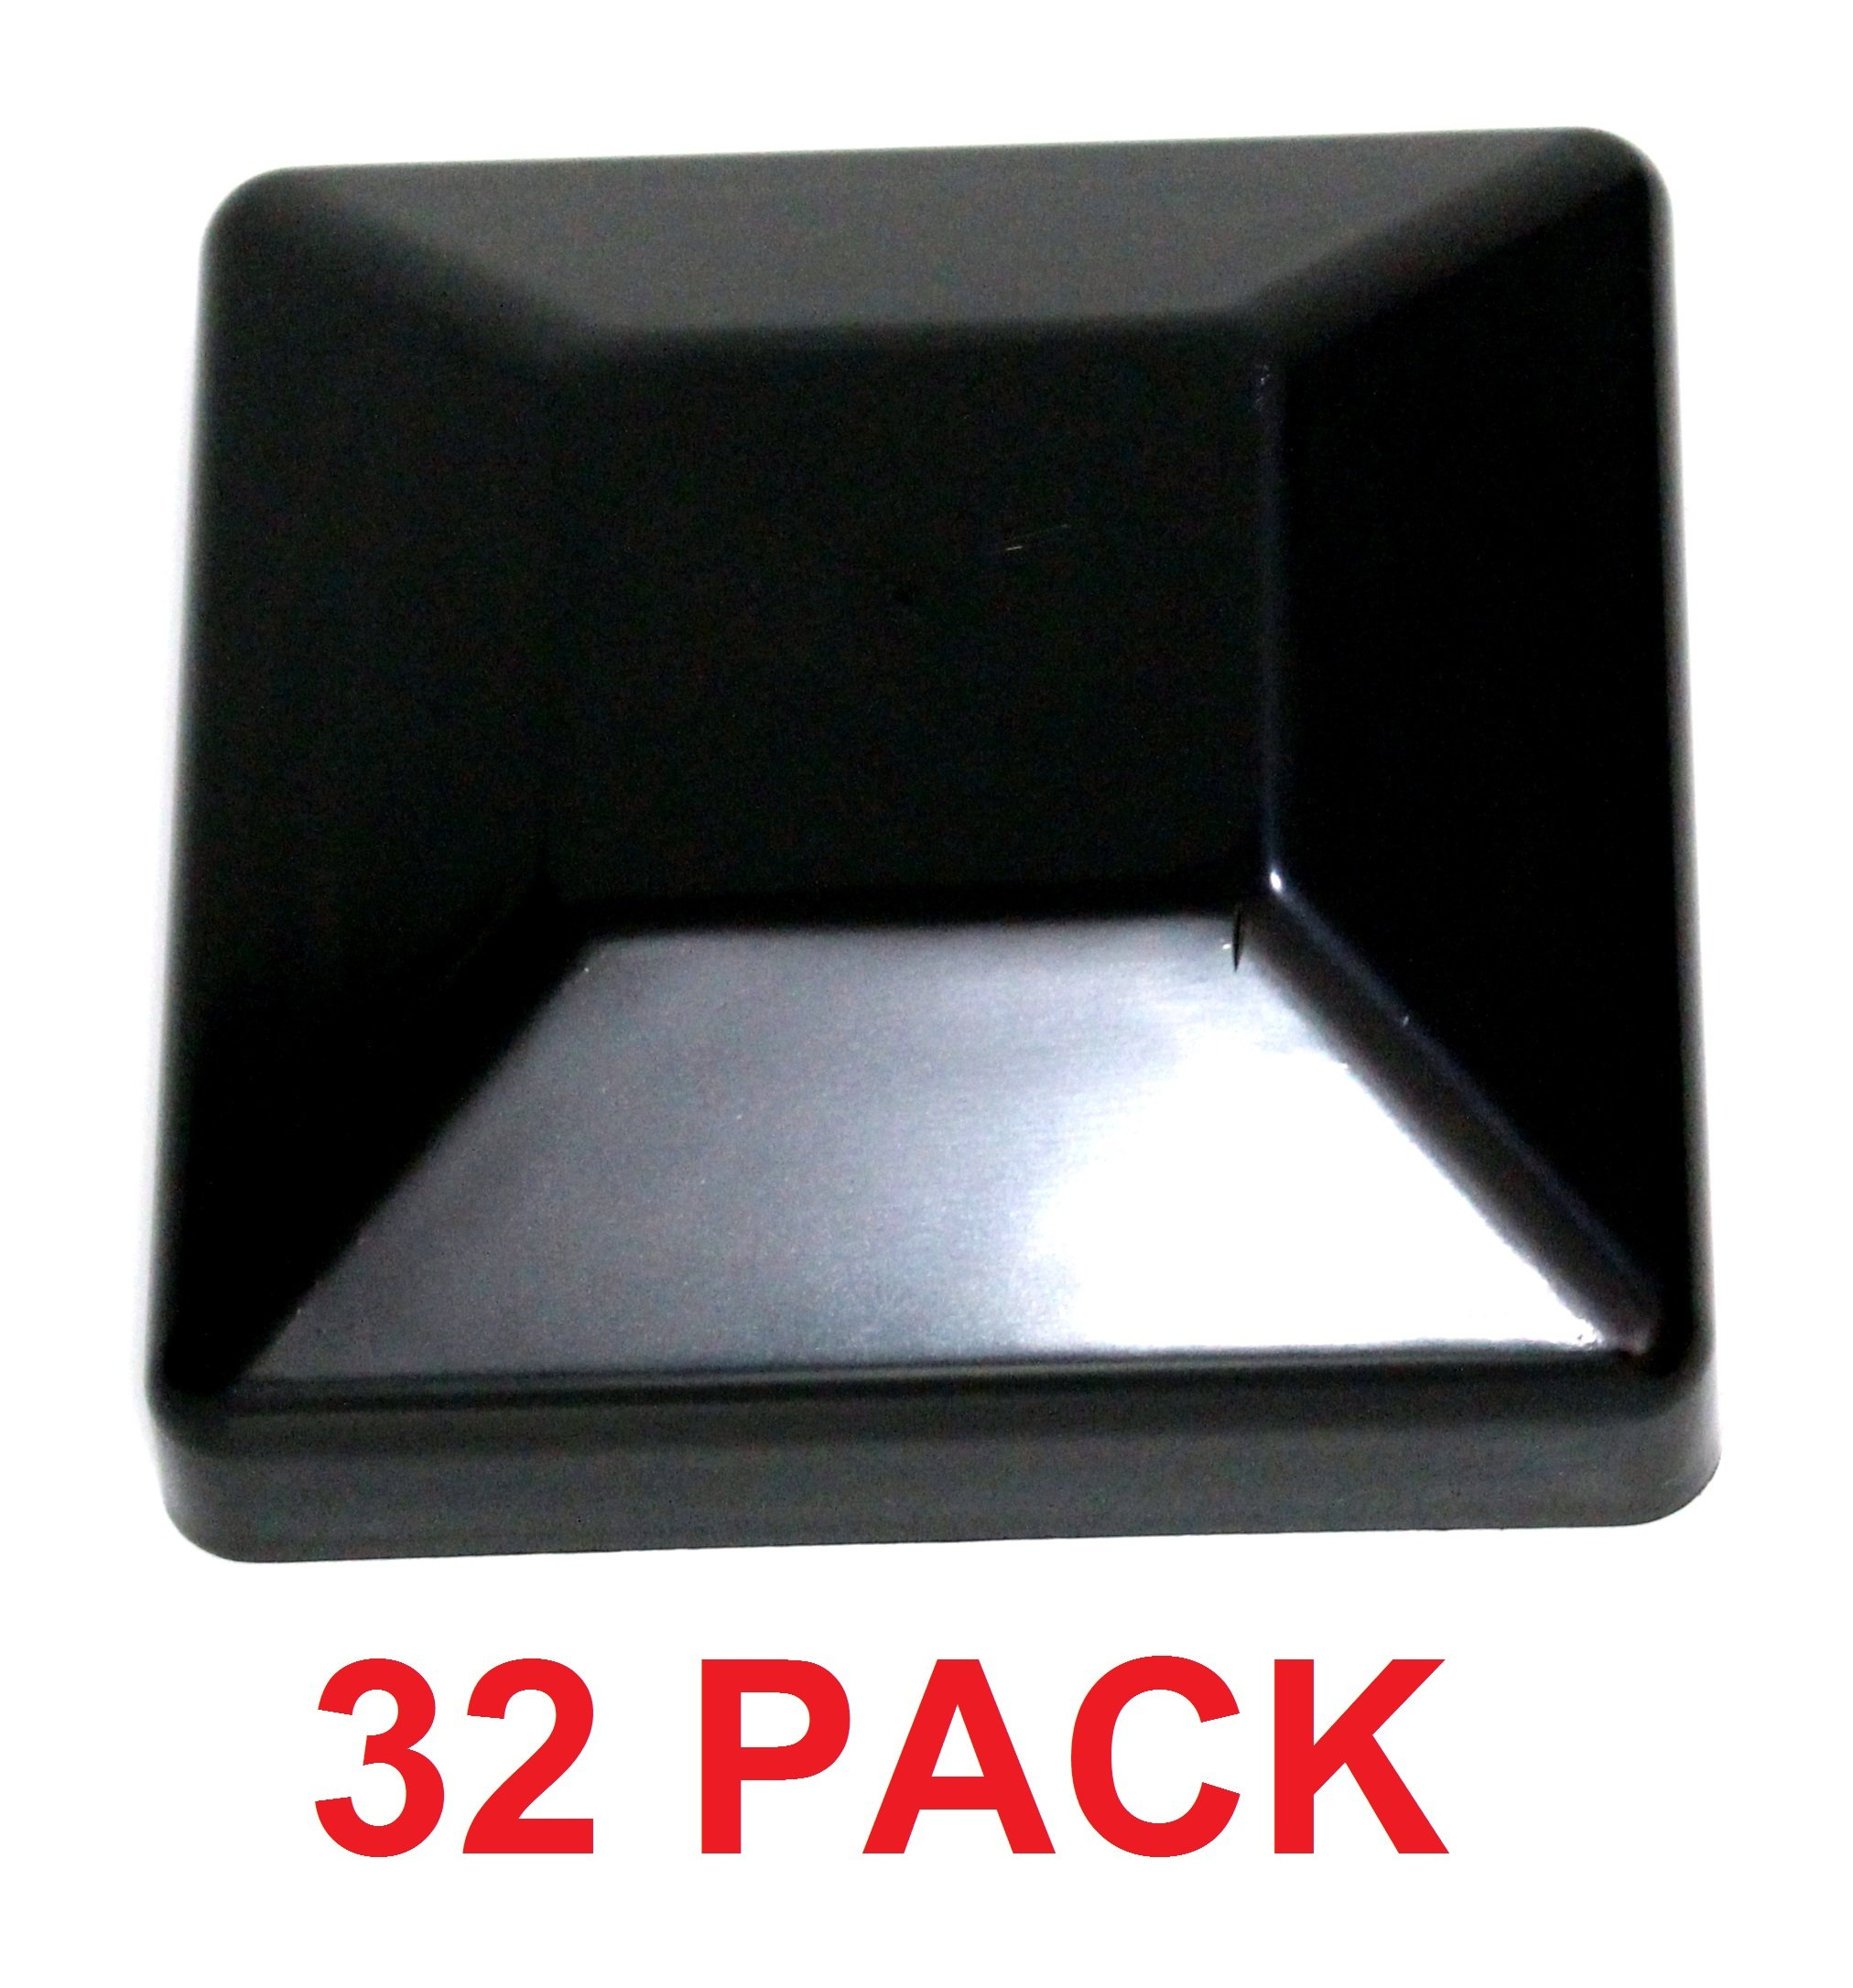 JSP Manufacturing Plastic New Fence Post Black Caps 4X4 (3 5/8) Pressure Treated Wood Made In USA MULITPACK WHOLESALE Bulk (32)